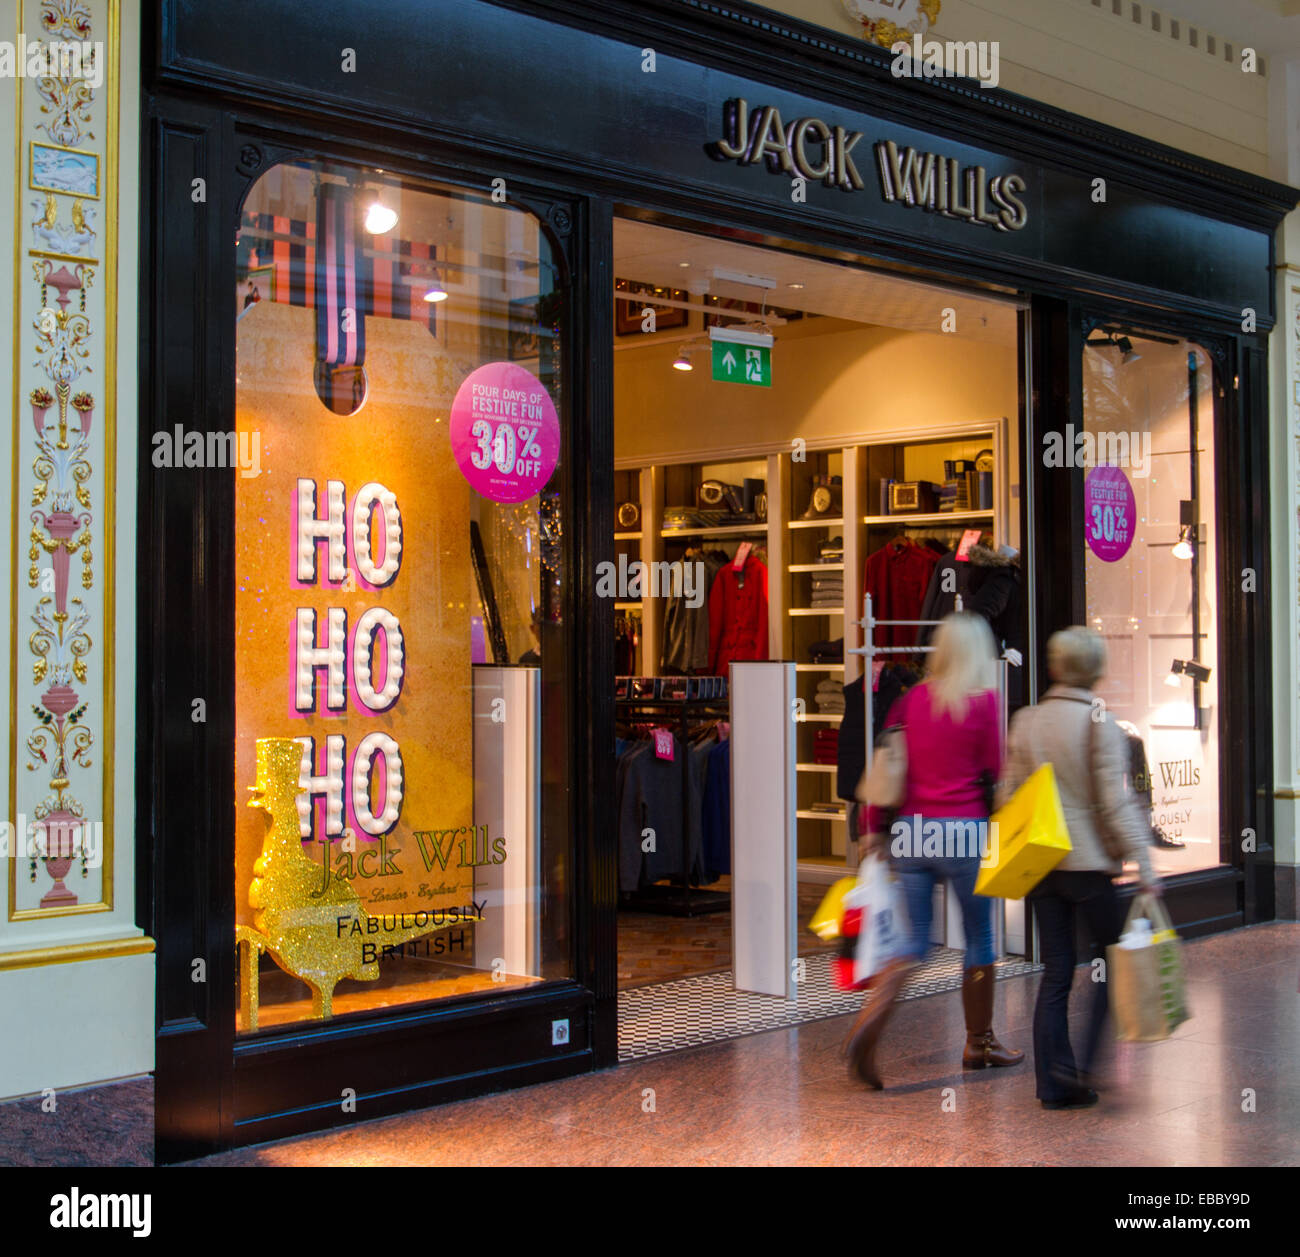 Trafford Centre shopping centre in Manchester. Ho Ho Ho 30% off display at Jack Wills store on Black Friday Sales - Stock Image